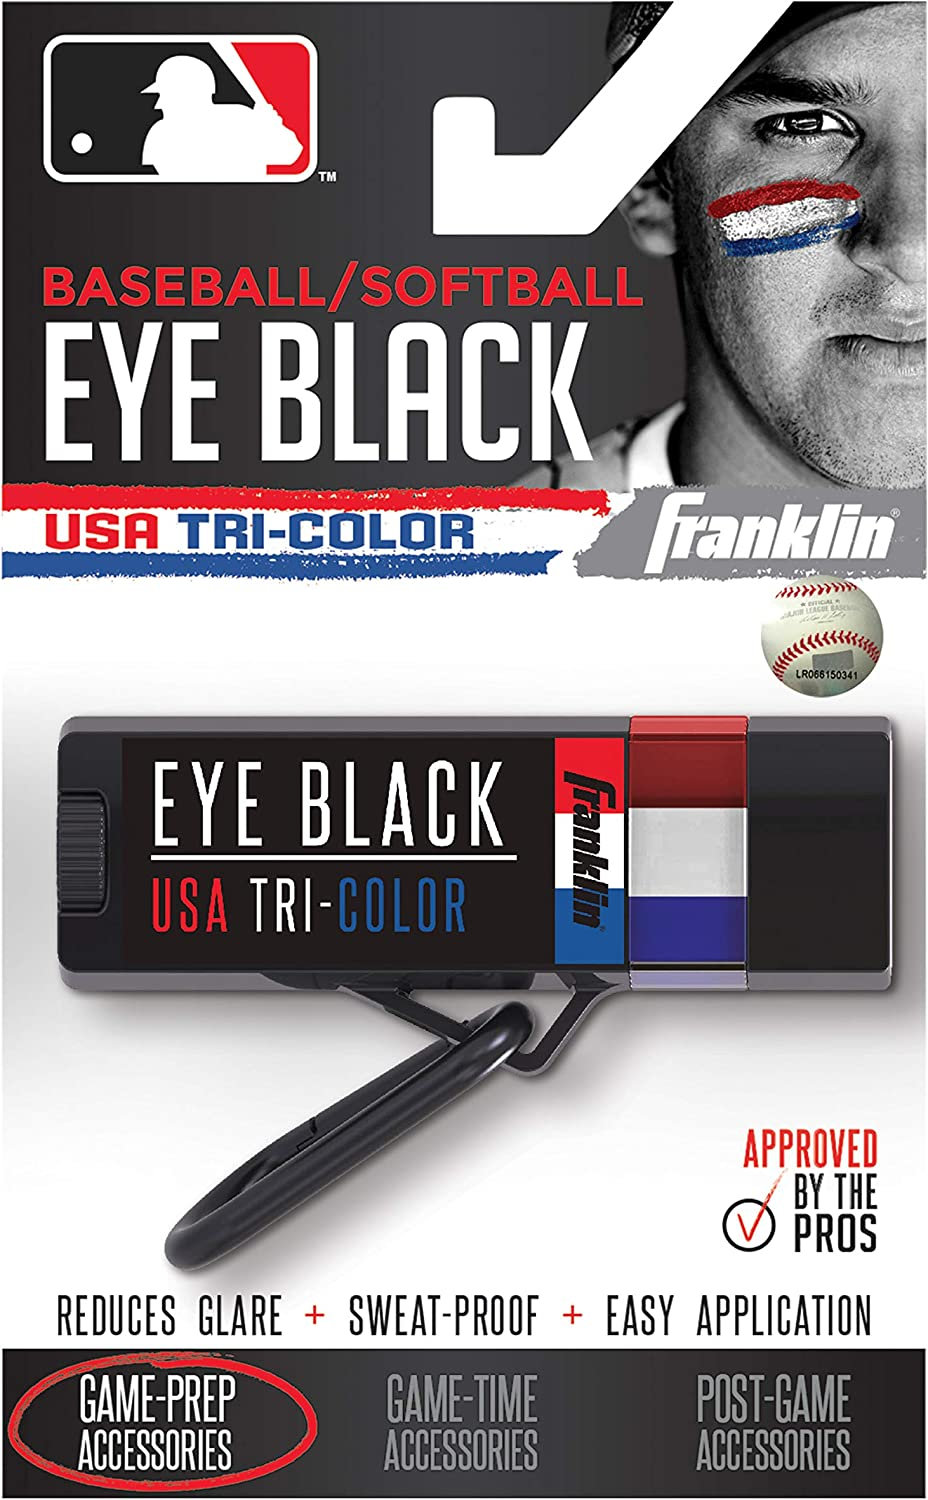 Franklin Sports MLB Eye Black - Glare Reduction Eye Black For All Athletes - Baseball Eye Black or Softball Eye Black - Eye Black Paint for Kids, Adults, Athletes, Baseball, Softball Players